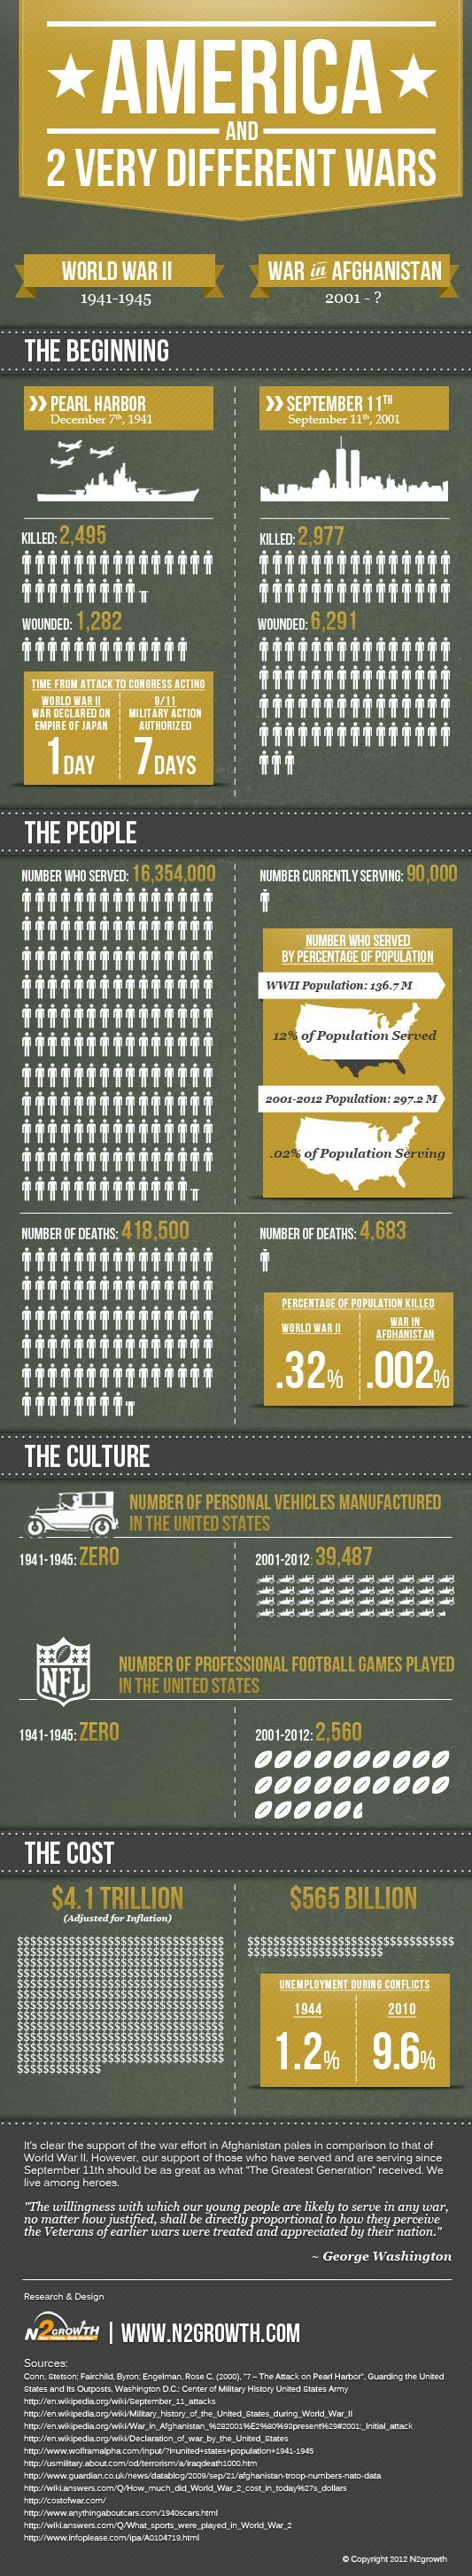 9/11 #INFOGRAPHIC – THE DESTINY OF A NATION...I NEED TO INVESTIGATE THESE IDEAS..